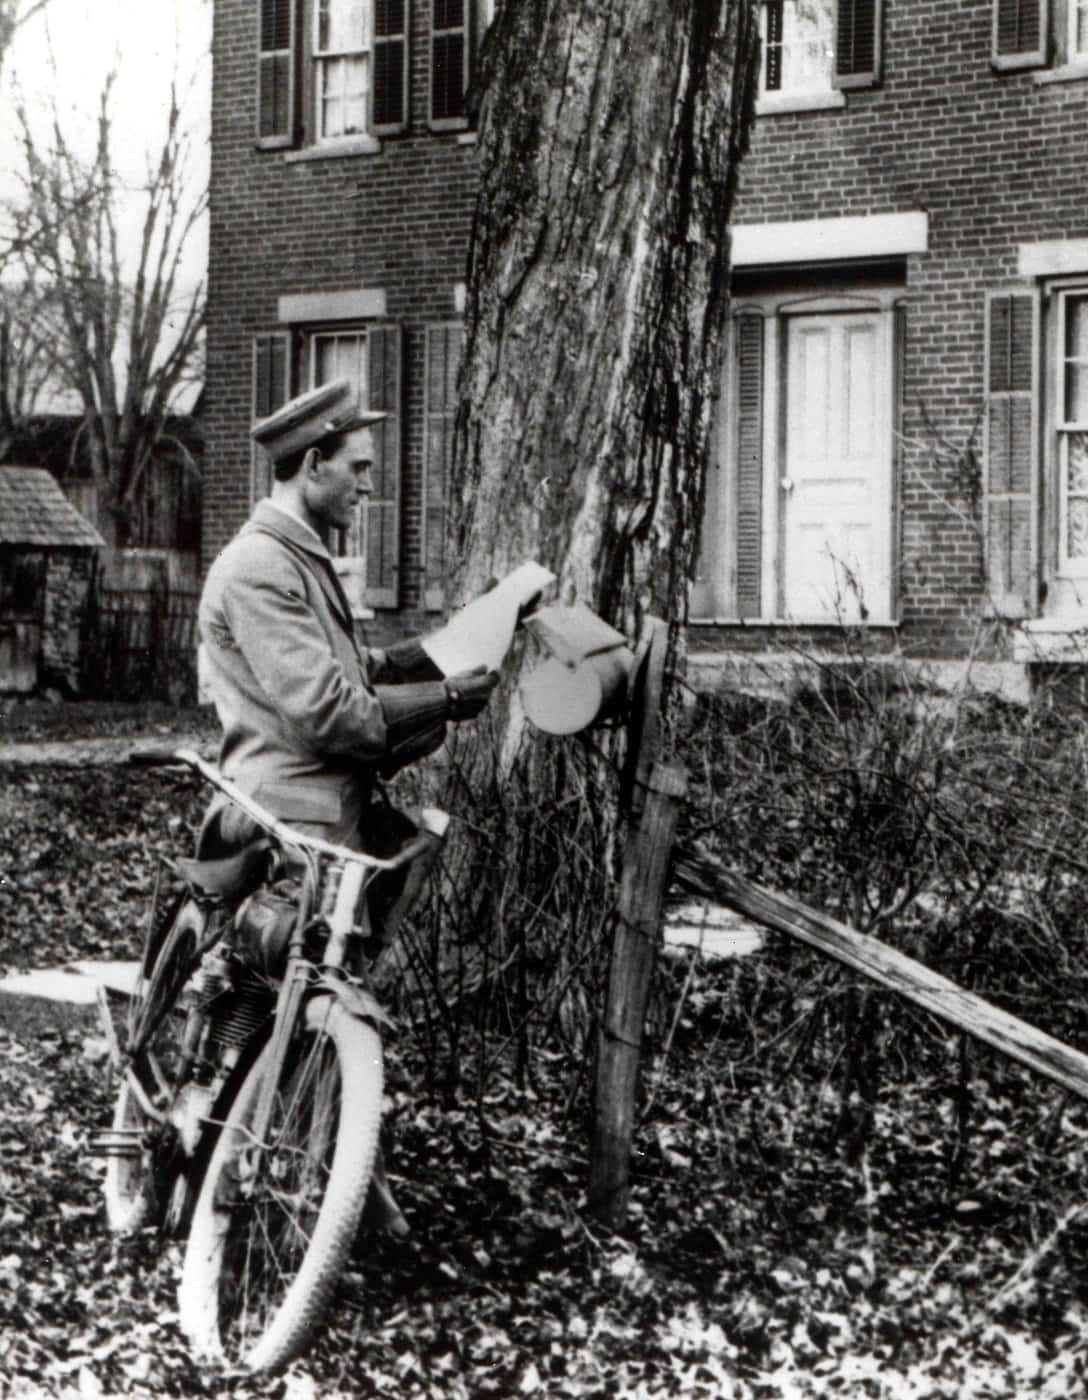 Letter Carrier Delivering Mail by Bicycle 1890